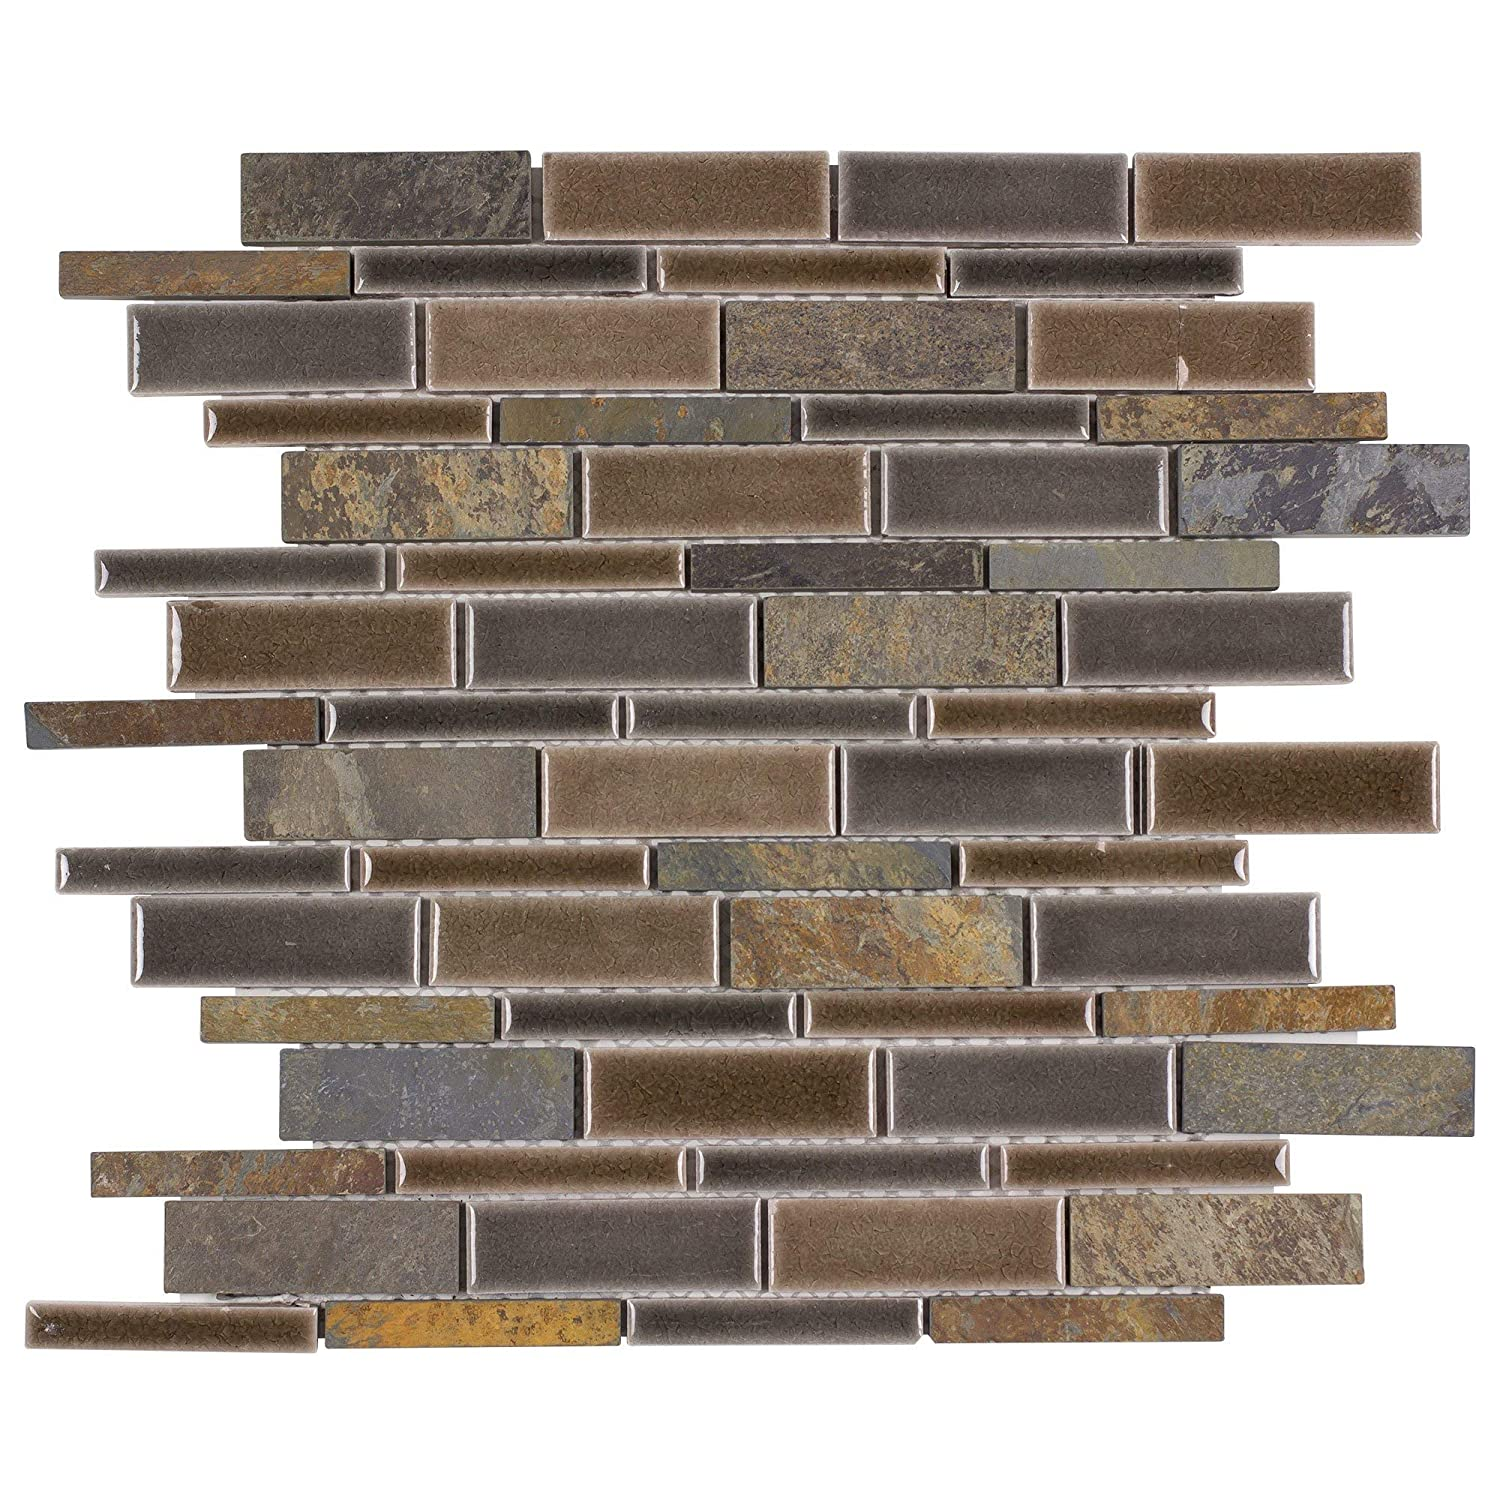 MTO0236 | Classic Linear Brown Grey Porcelain Stone Mosaic Tile Mosaic Tile Outlet